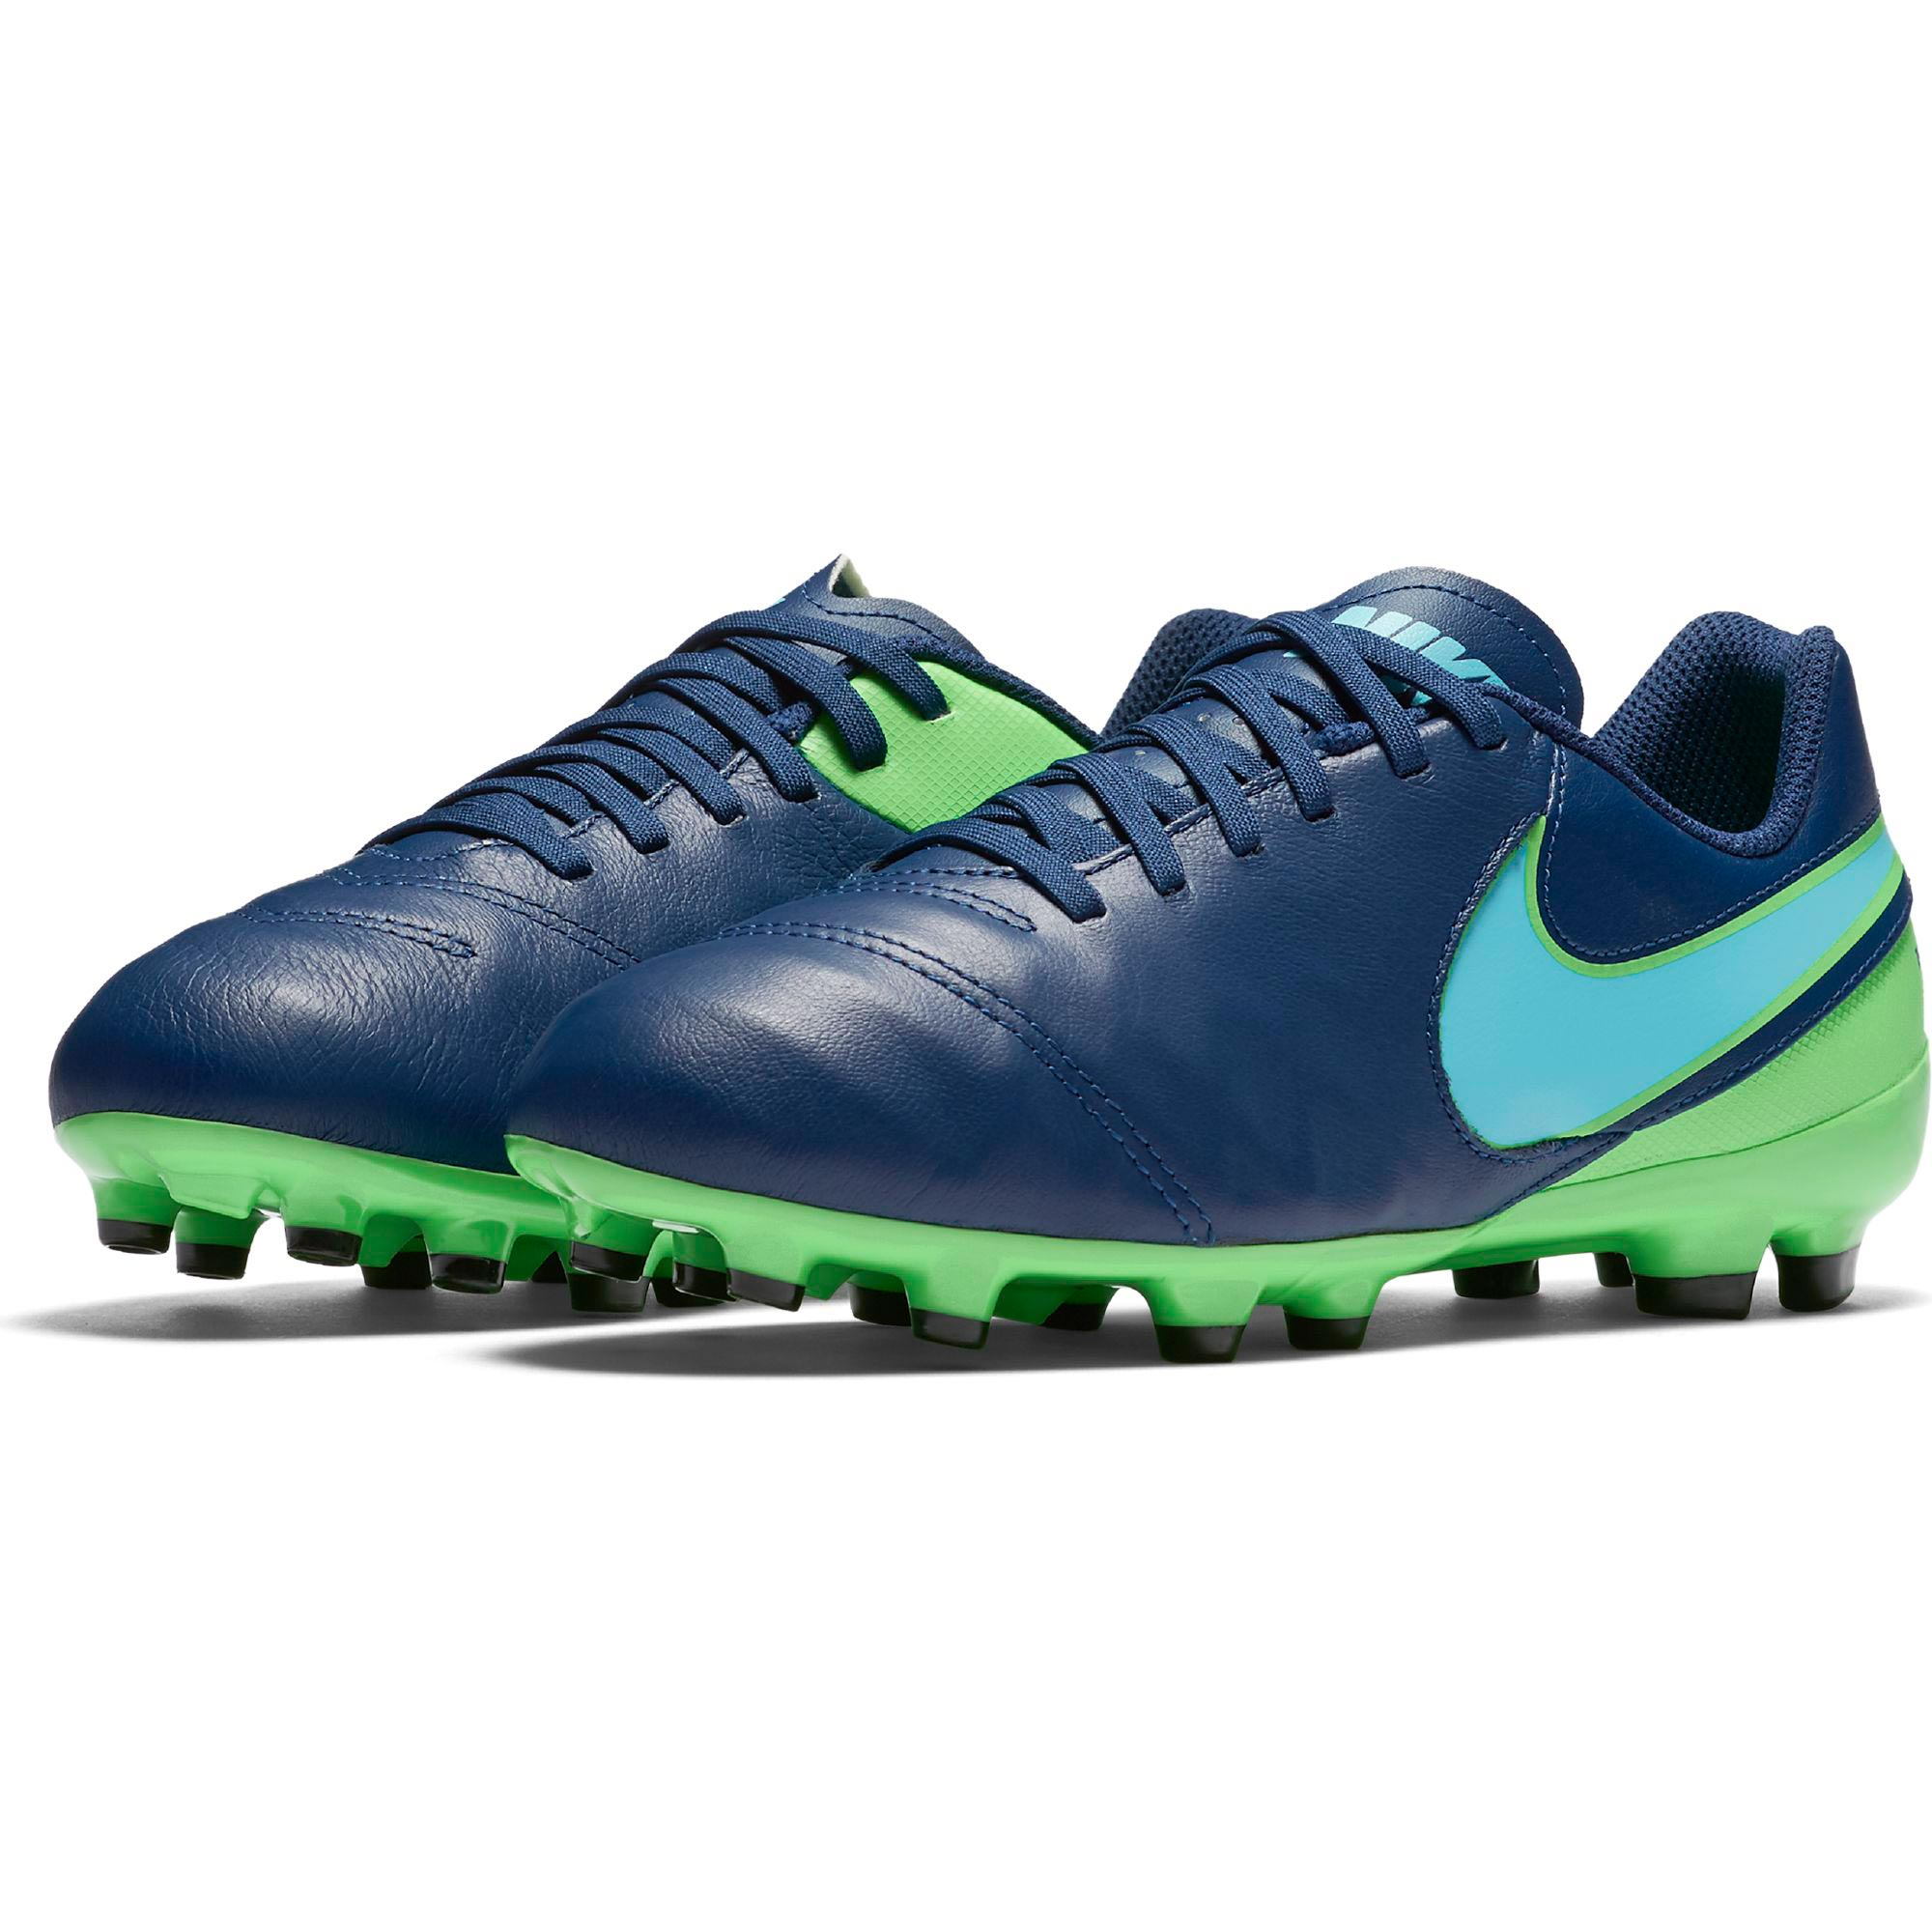 Nike Tiempo Legend VI FG Coastal Blue/Polari